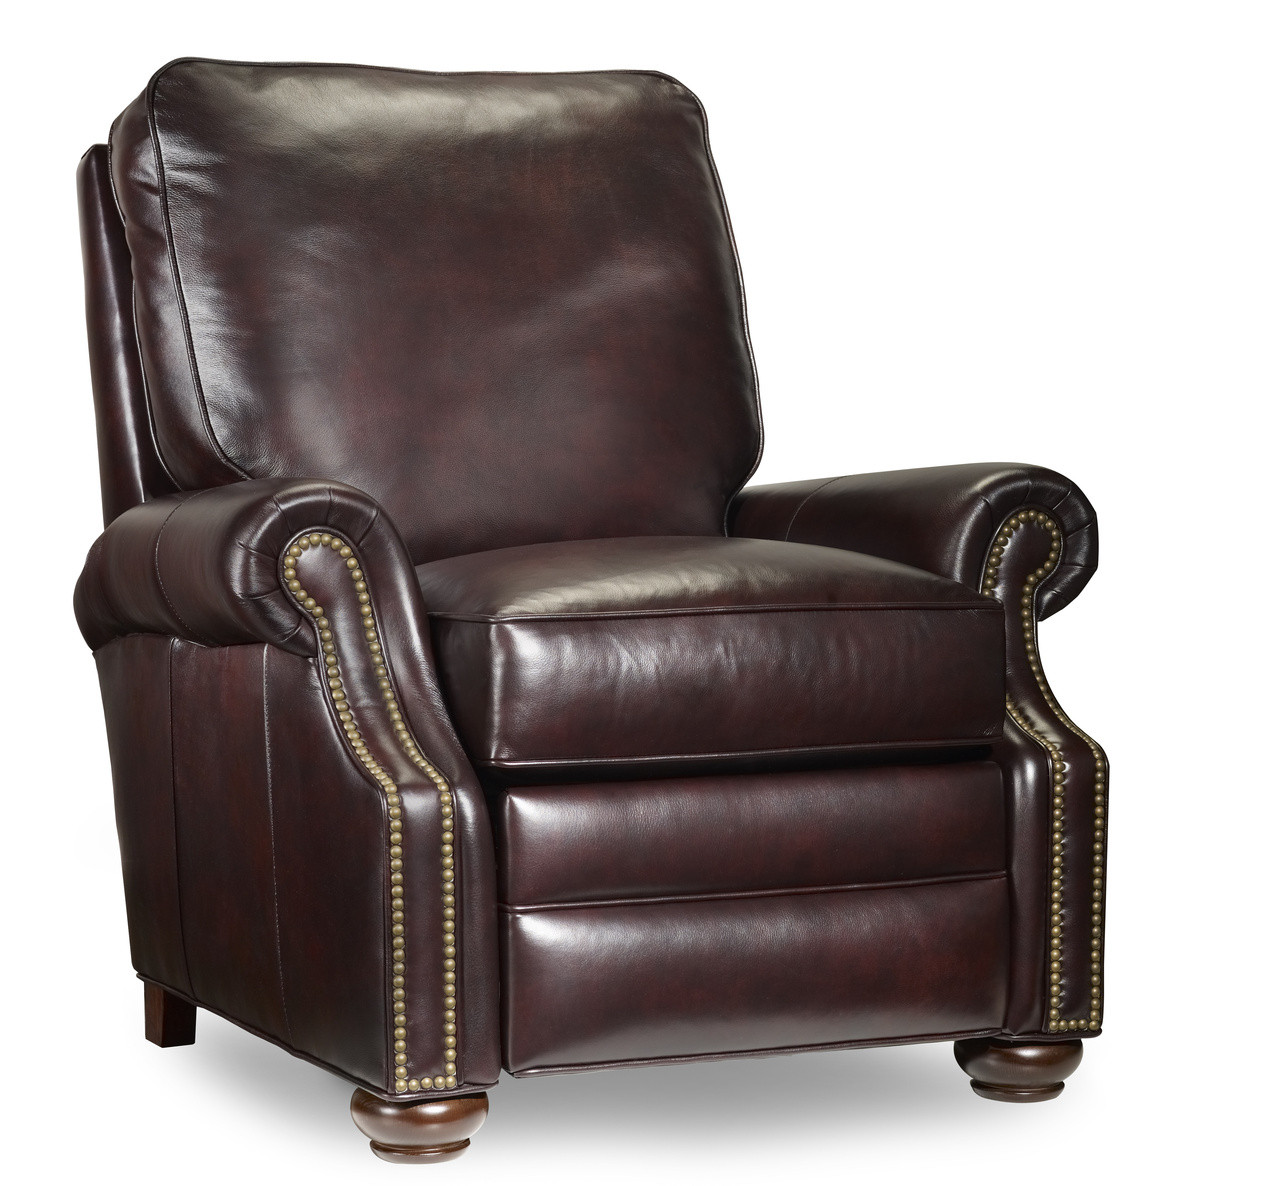 Marvelous Bradington Young 3220 Warner Recliner Pdpeps Interior Chair Design Pdpepsorg